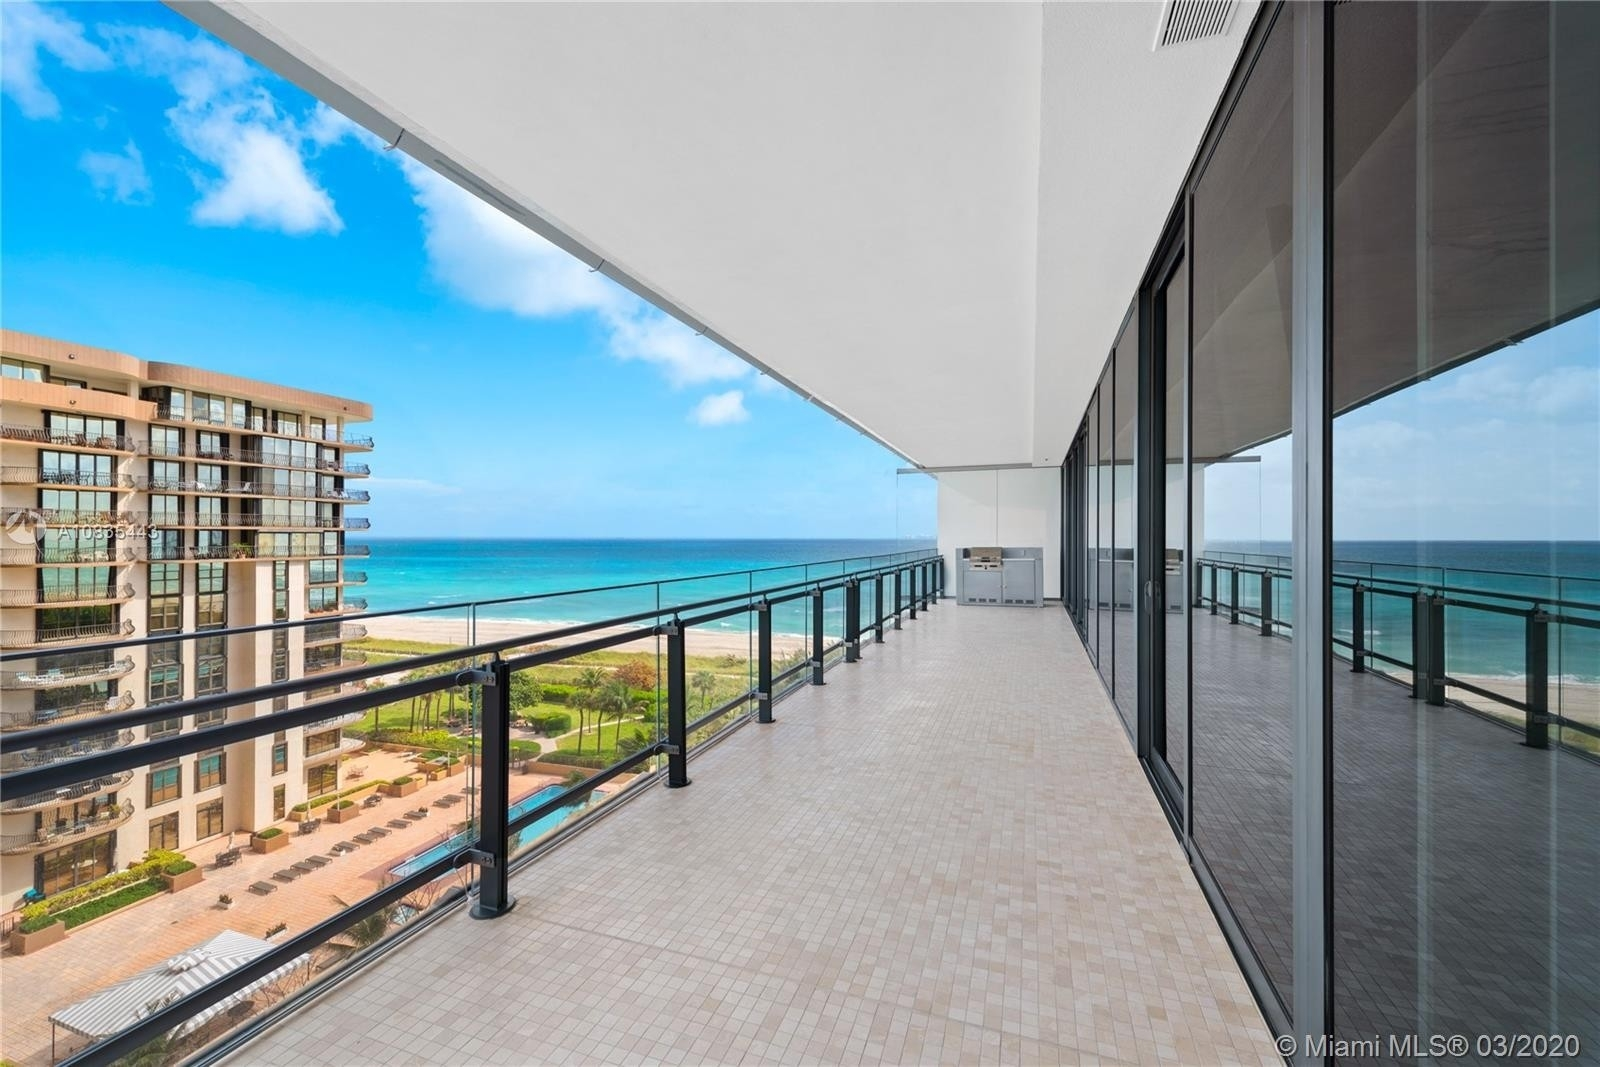 Property at 8701 Collins Ave , 803 Miami Beach